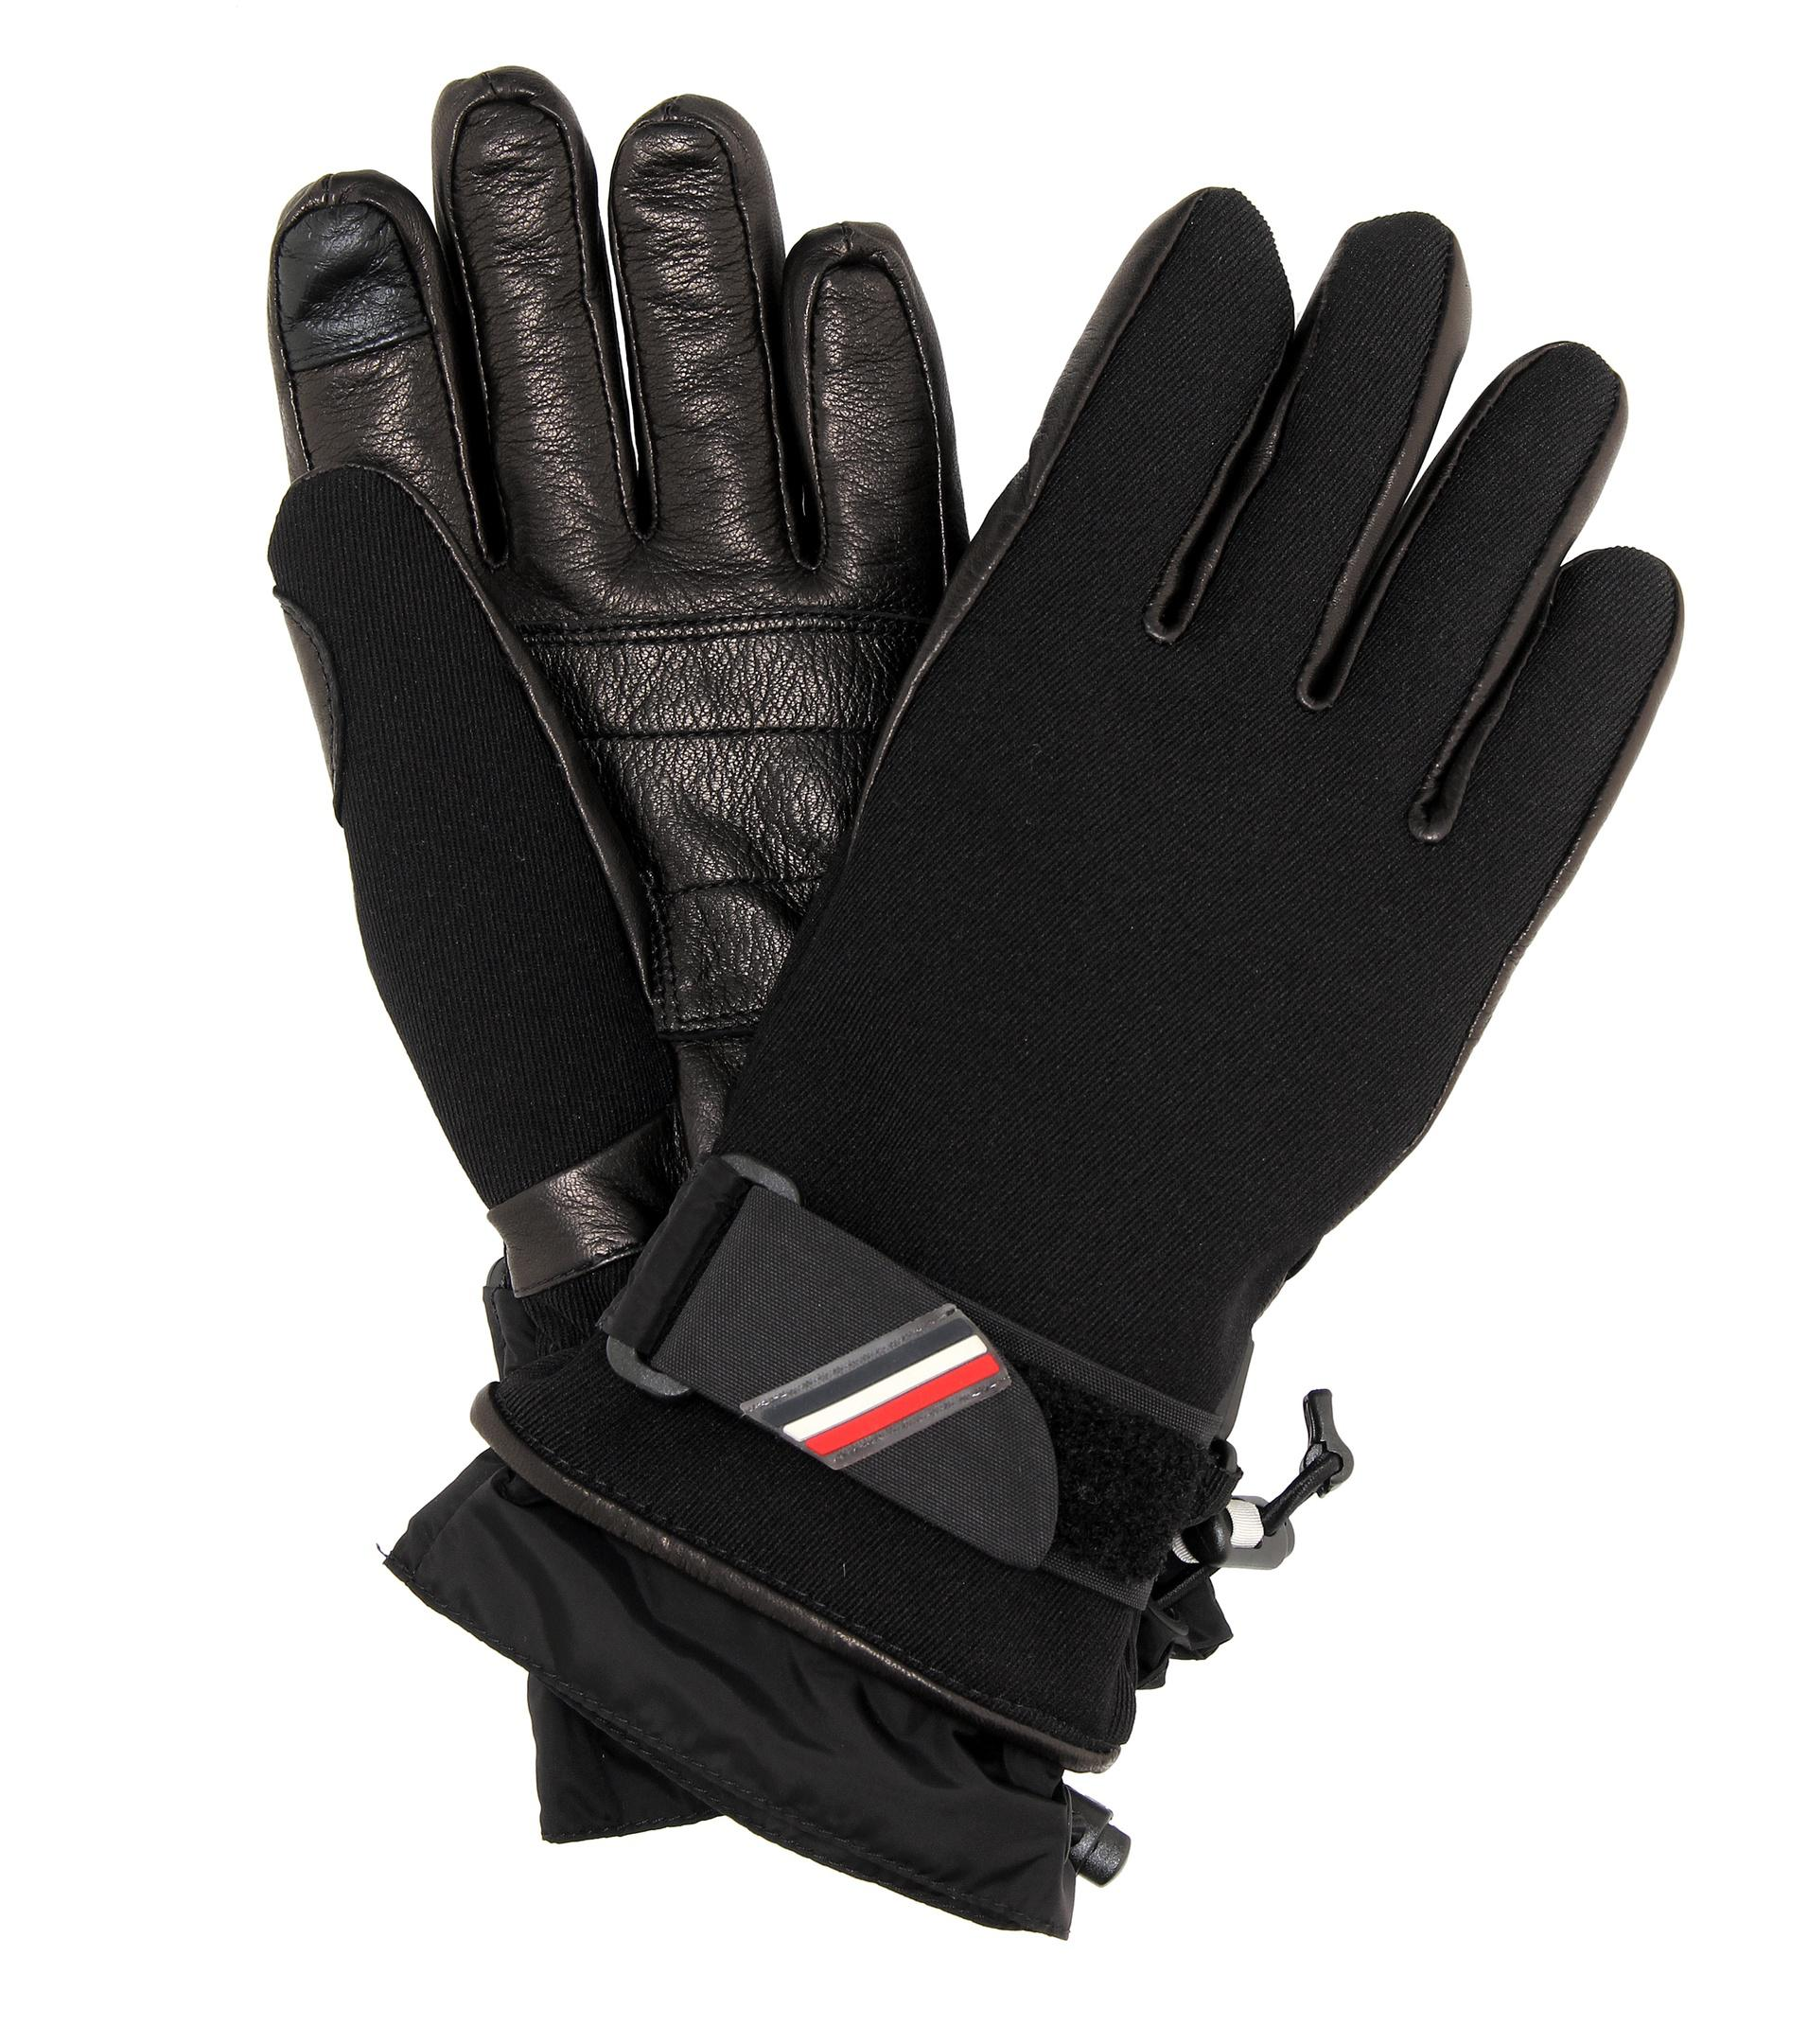 Moncler Grenoble. Women's Black Leather-trimmed Ski Gloves